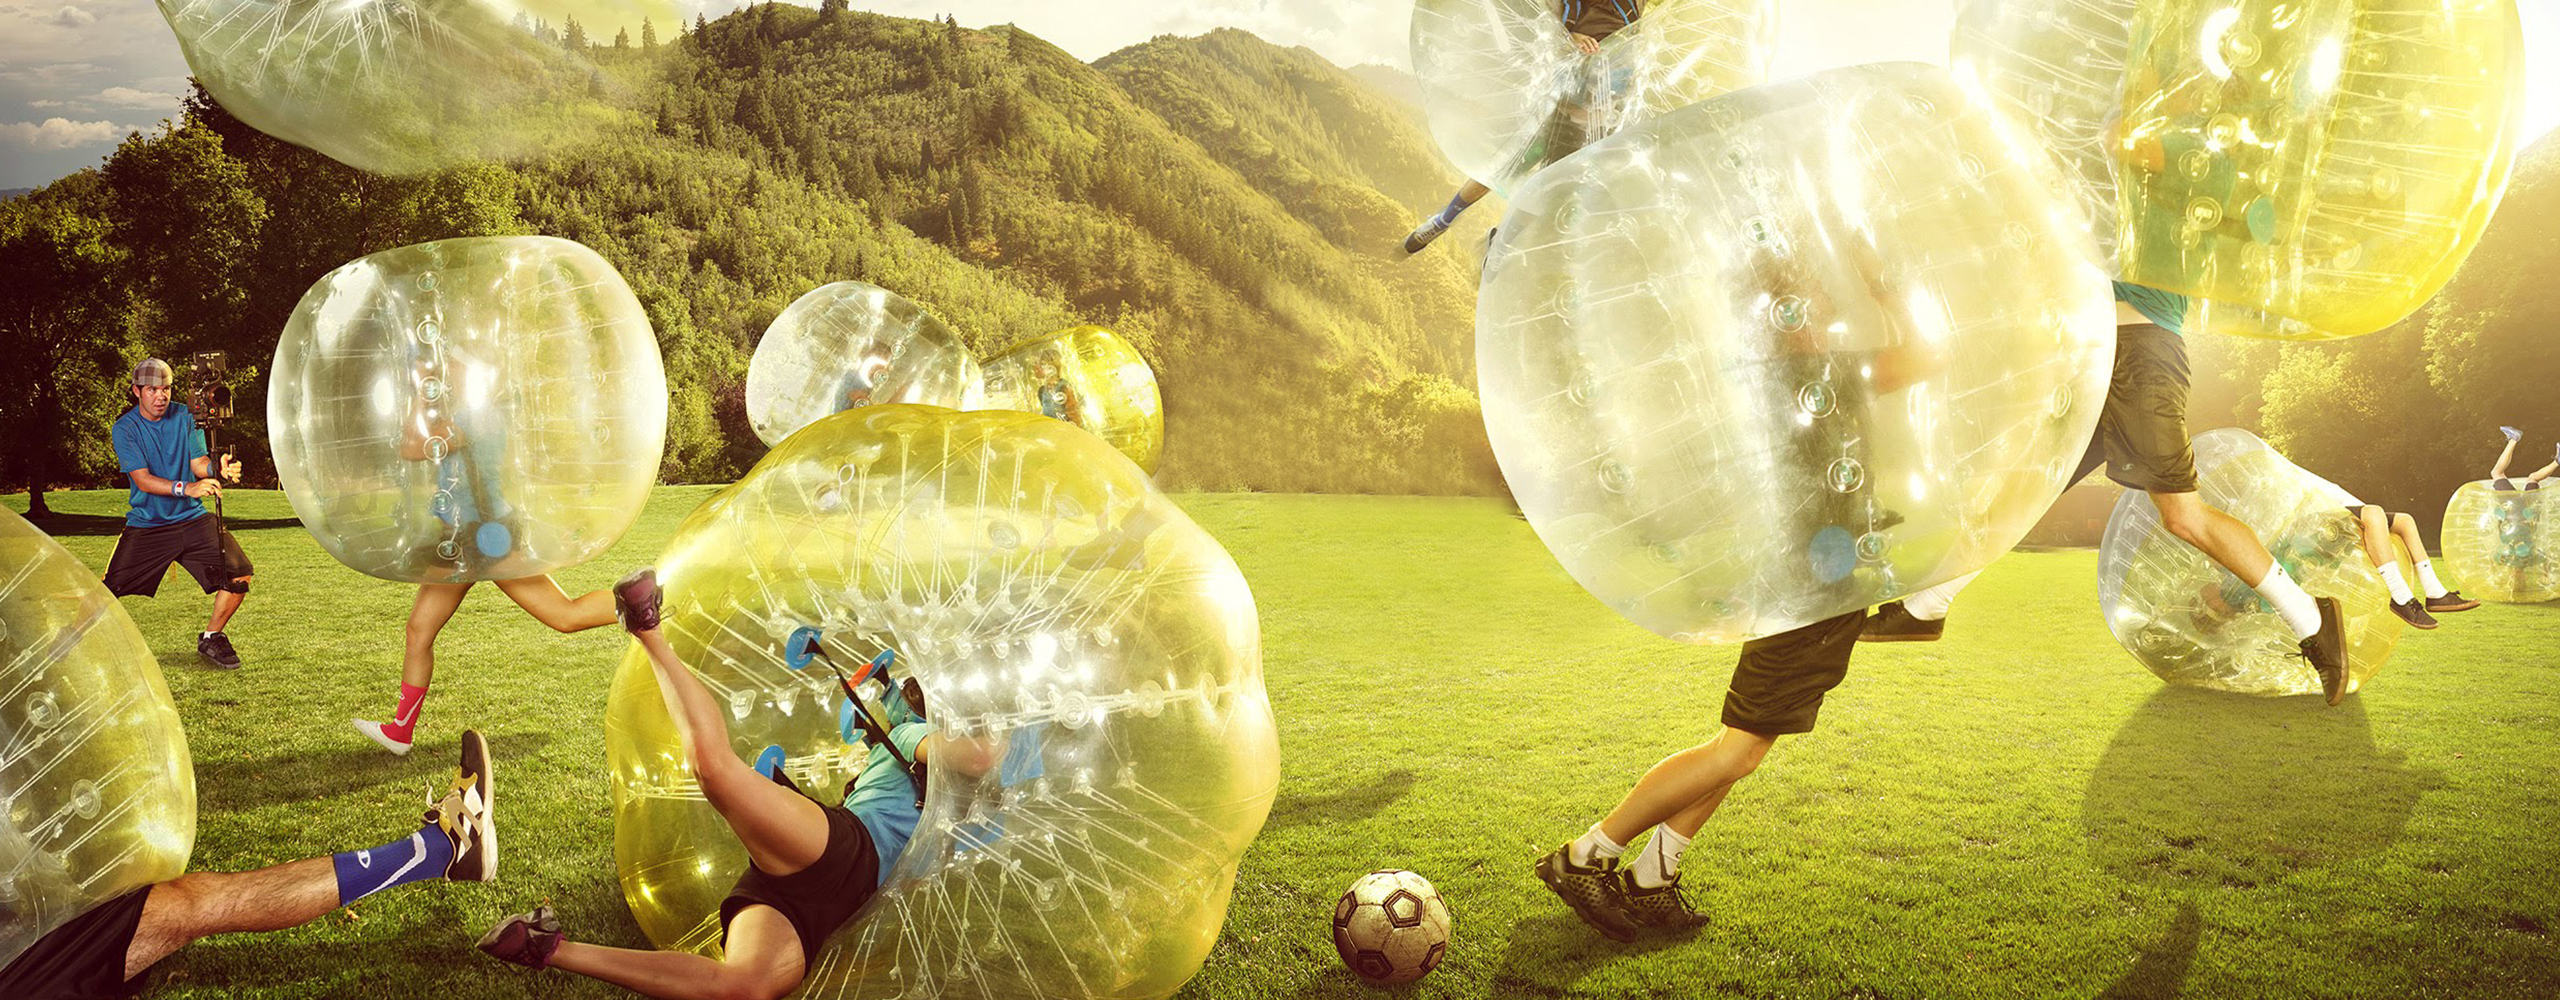 Orbite.be Bubble soccer